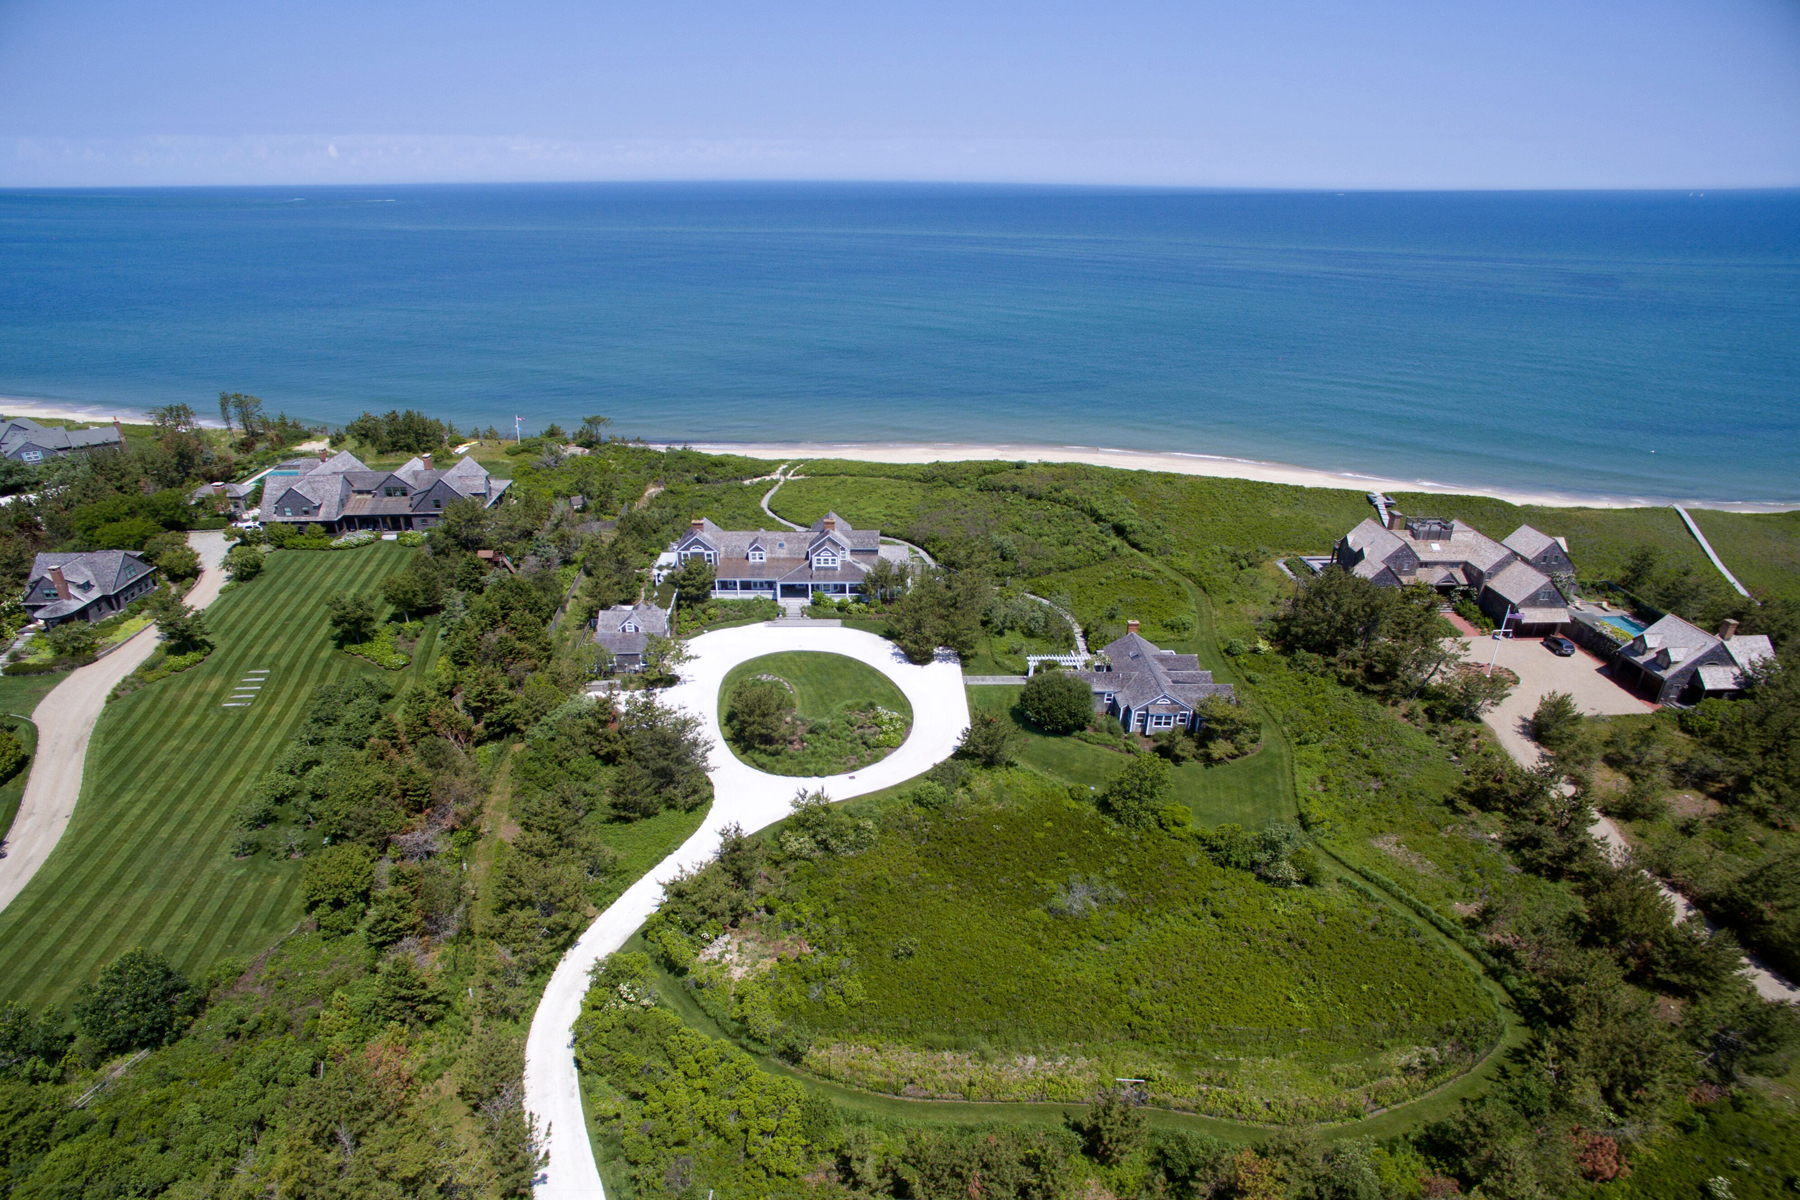 Single Family Home for Sale at Spectacular Oceanfront Dionis! 119 Eel Point Road 119 R Eel Point Road Nantucket, Massachusetts, 02554 United States